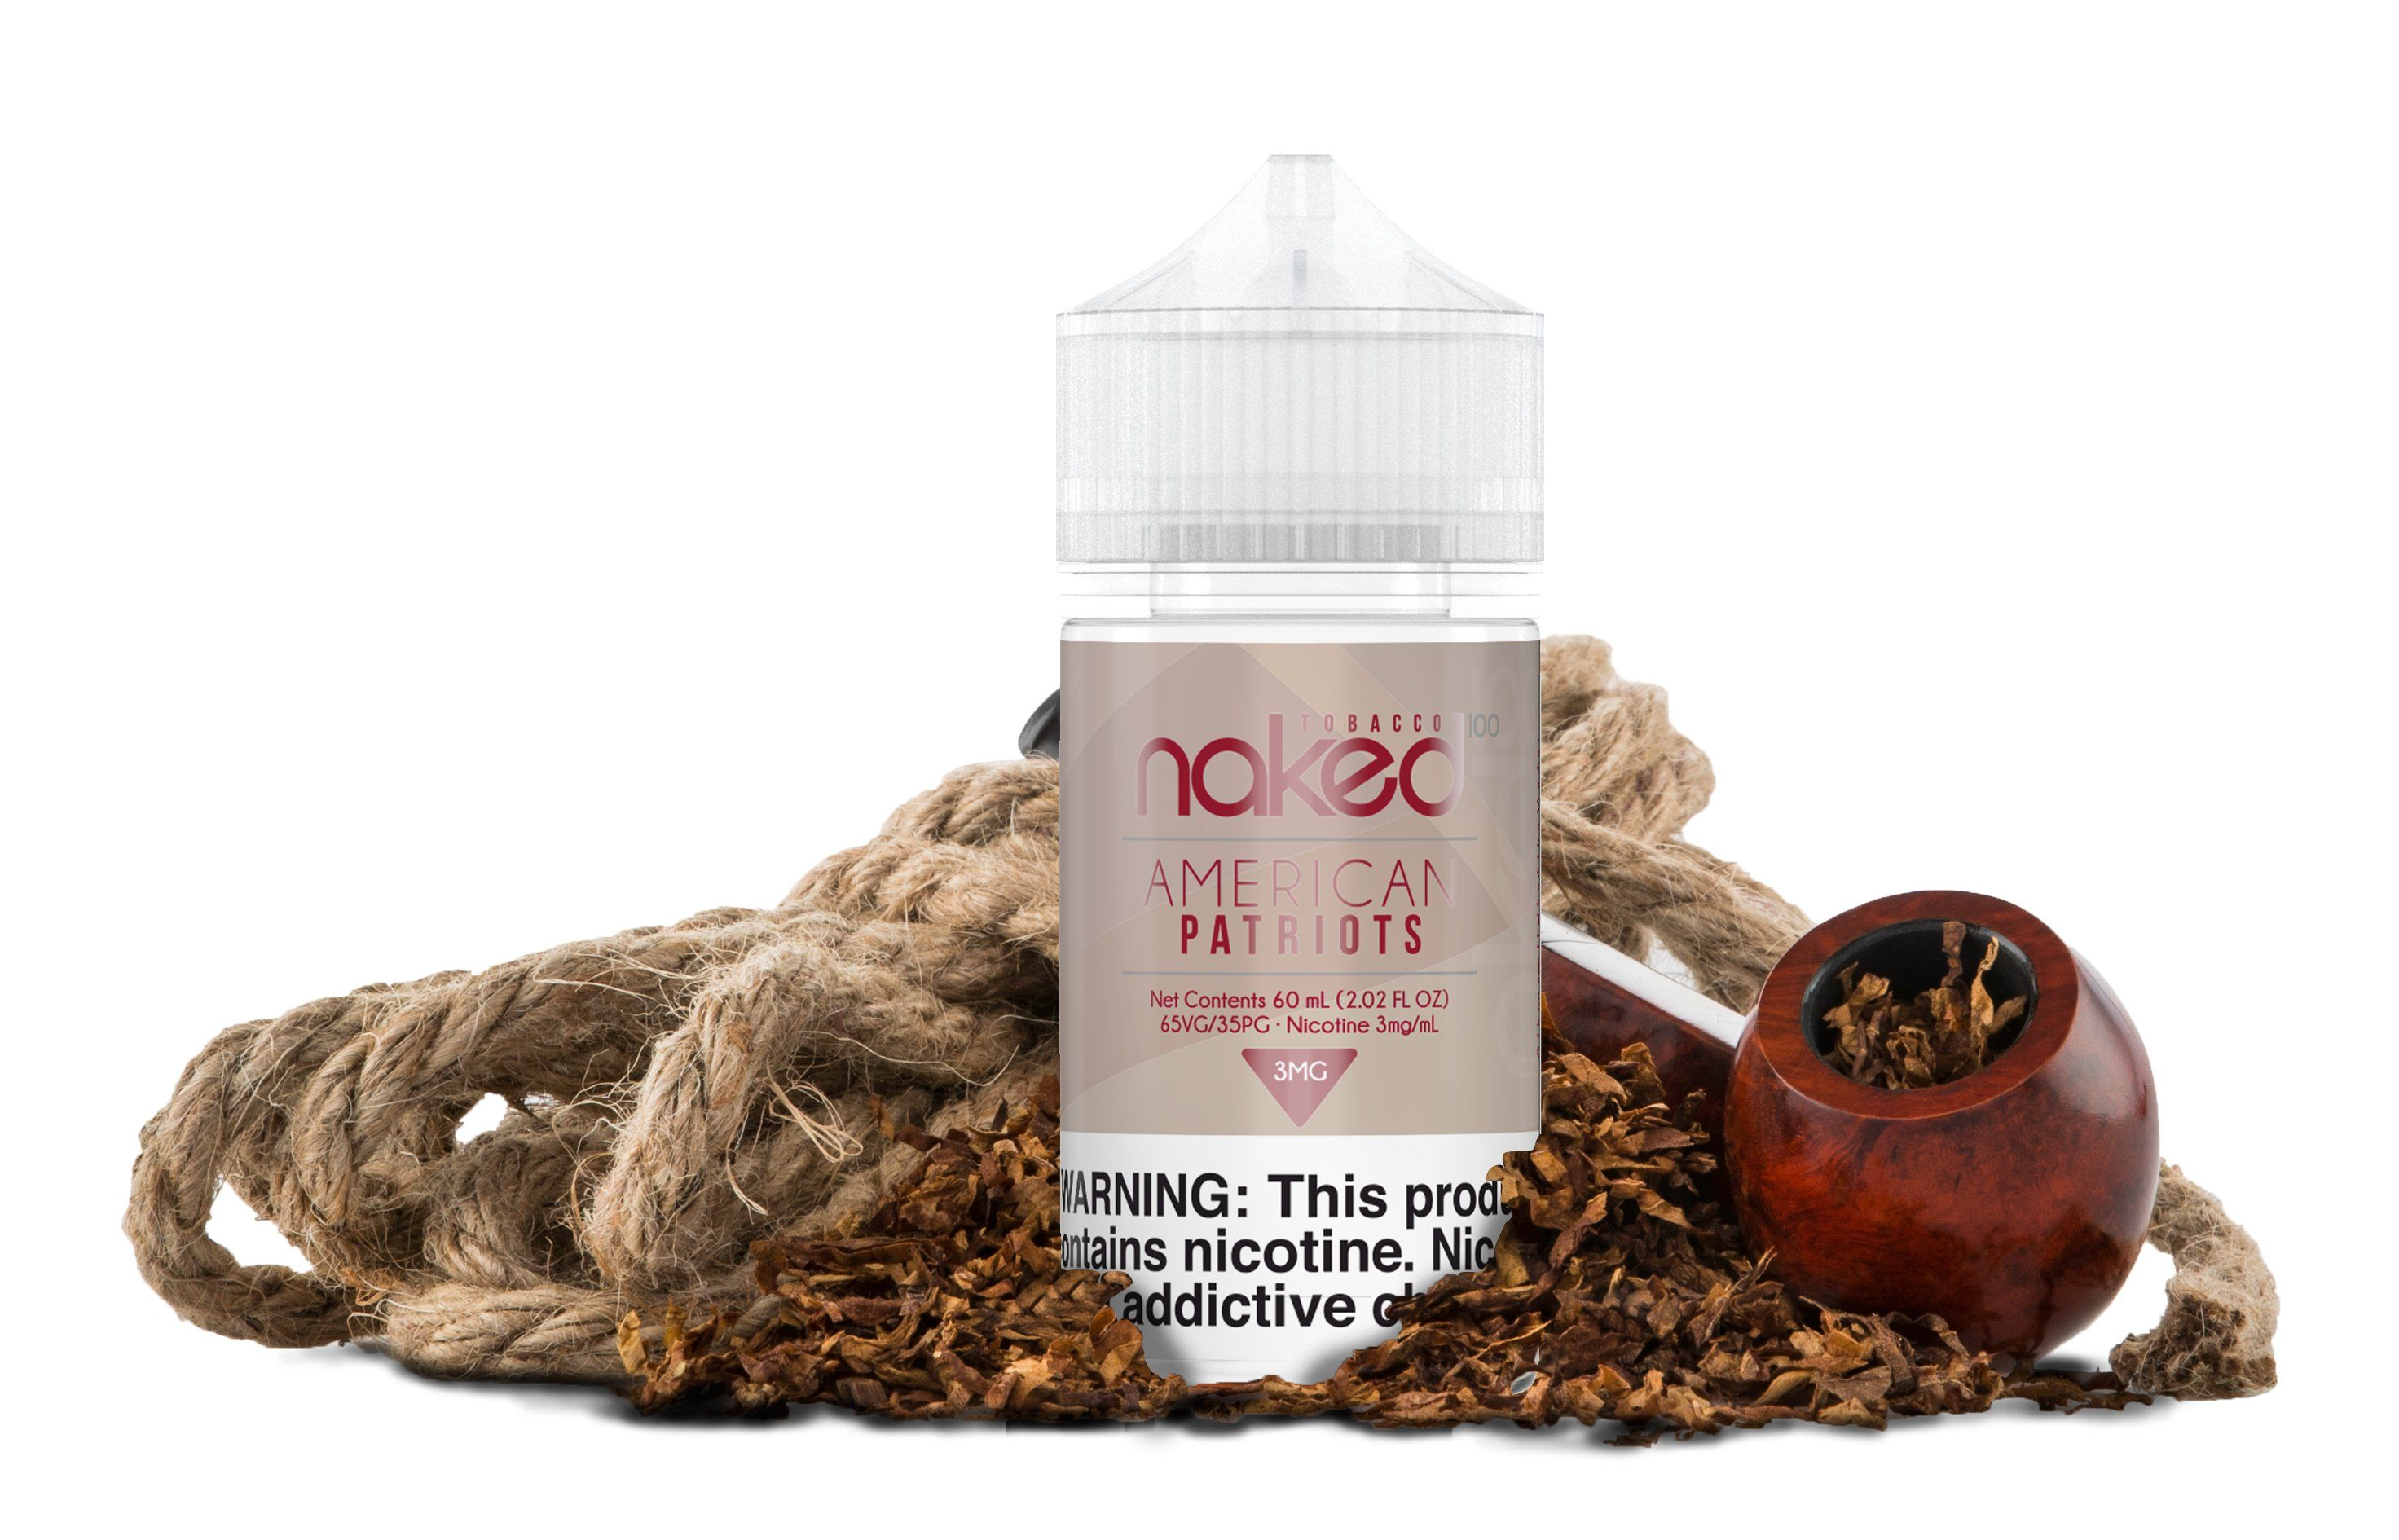 American Patriots by Naked 100 Review | E-Juice Review